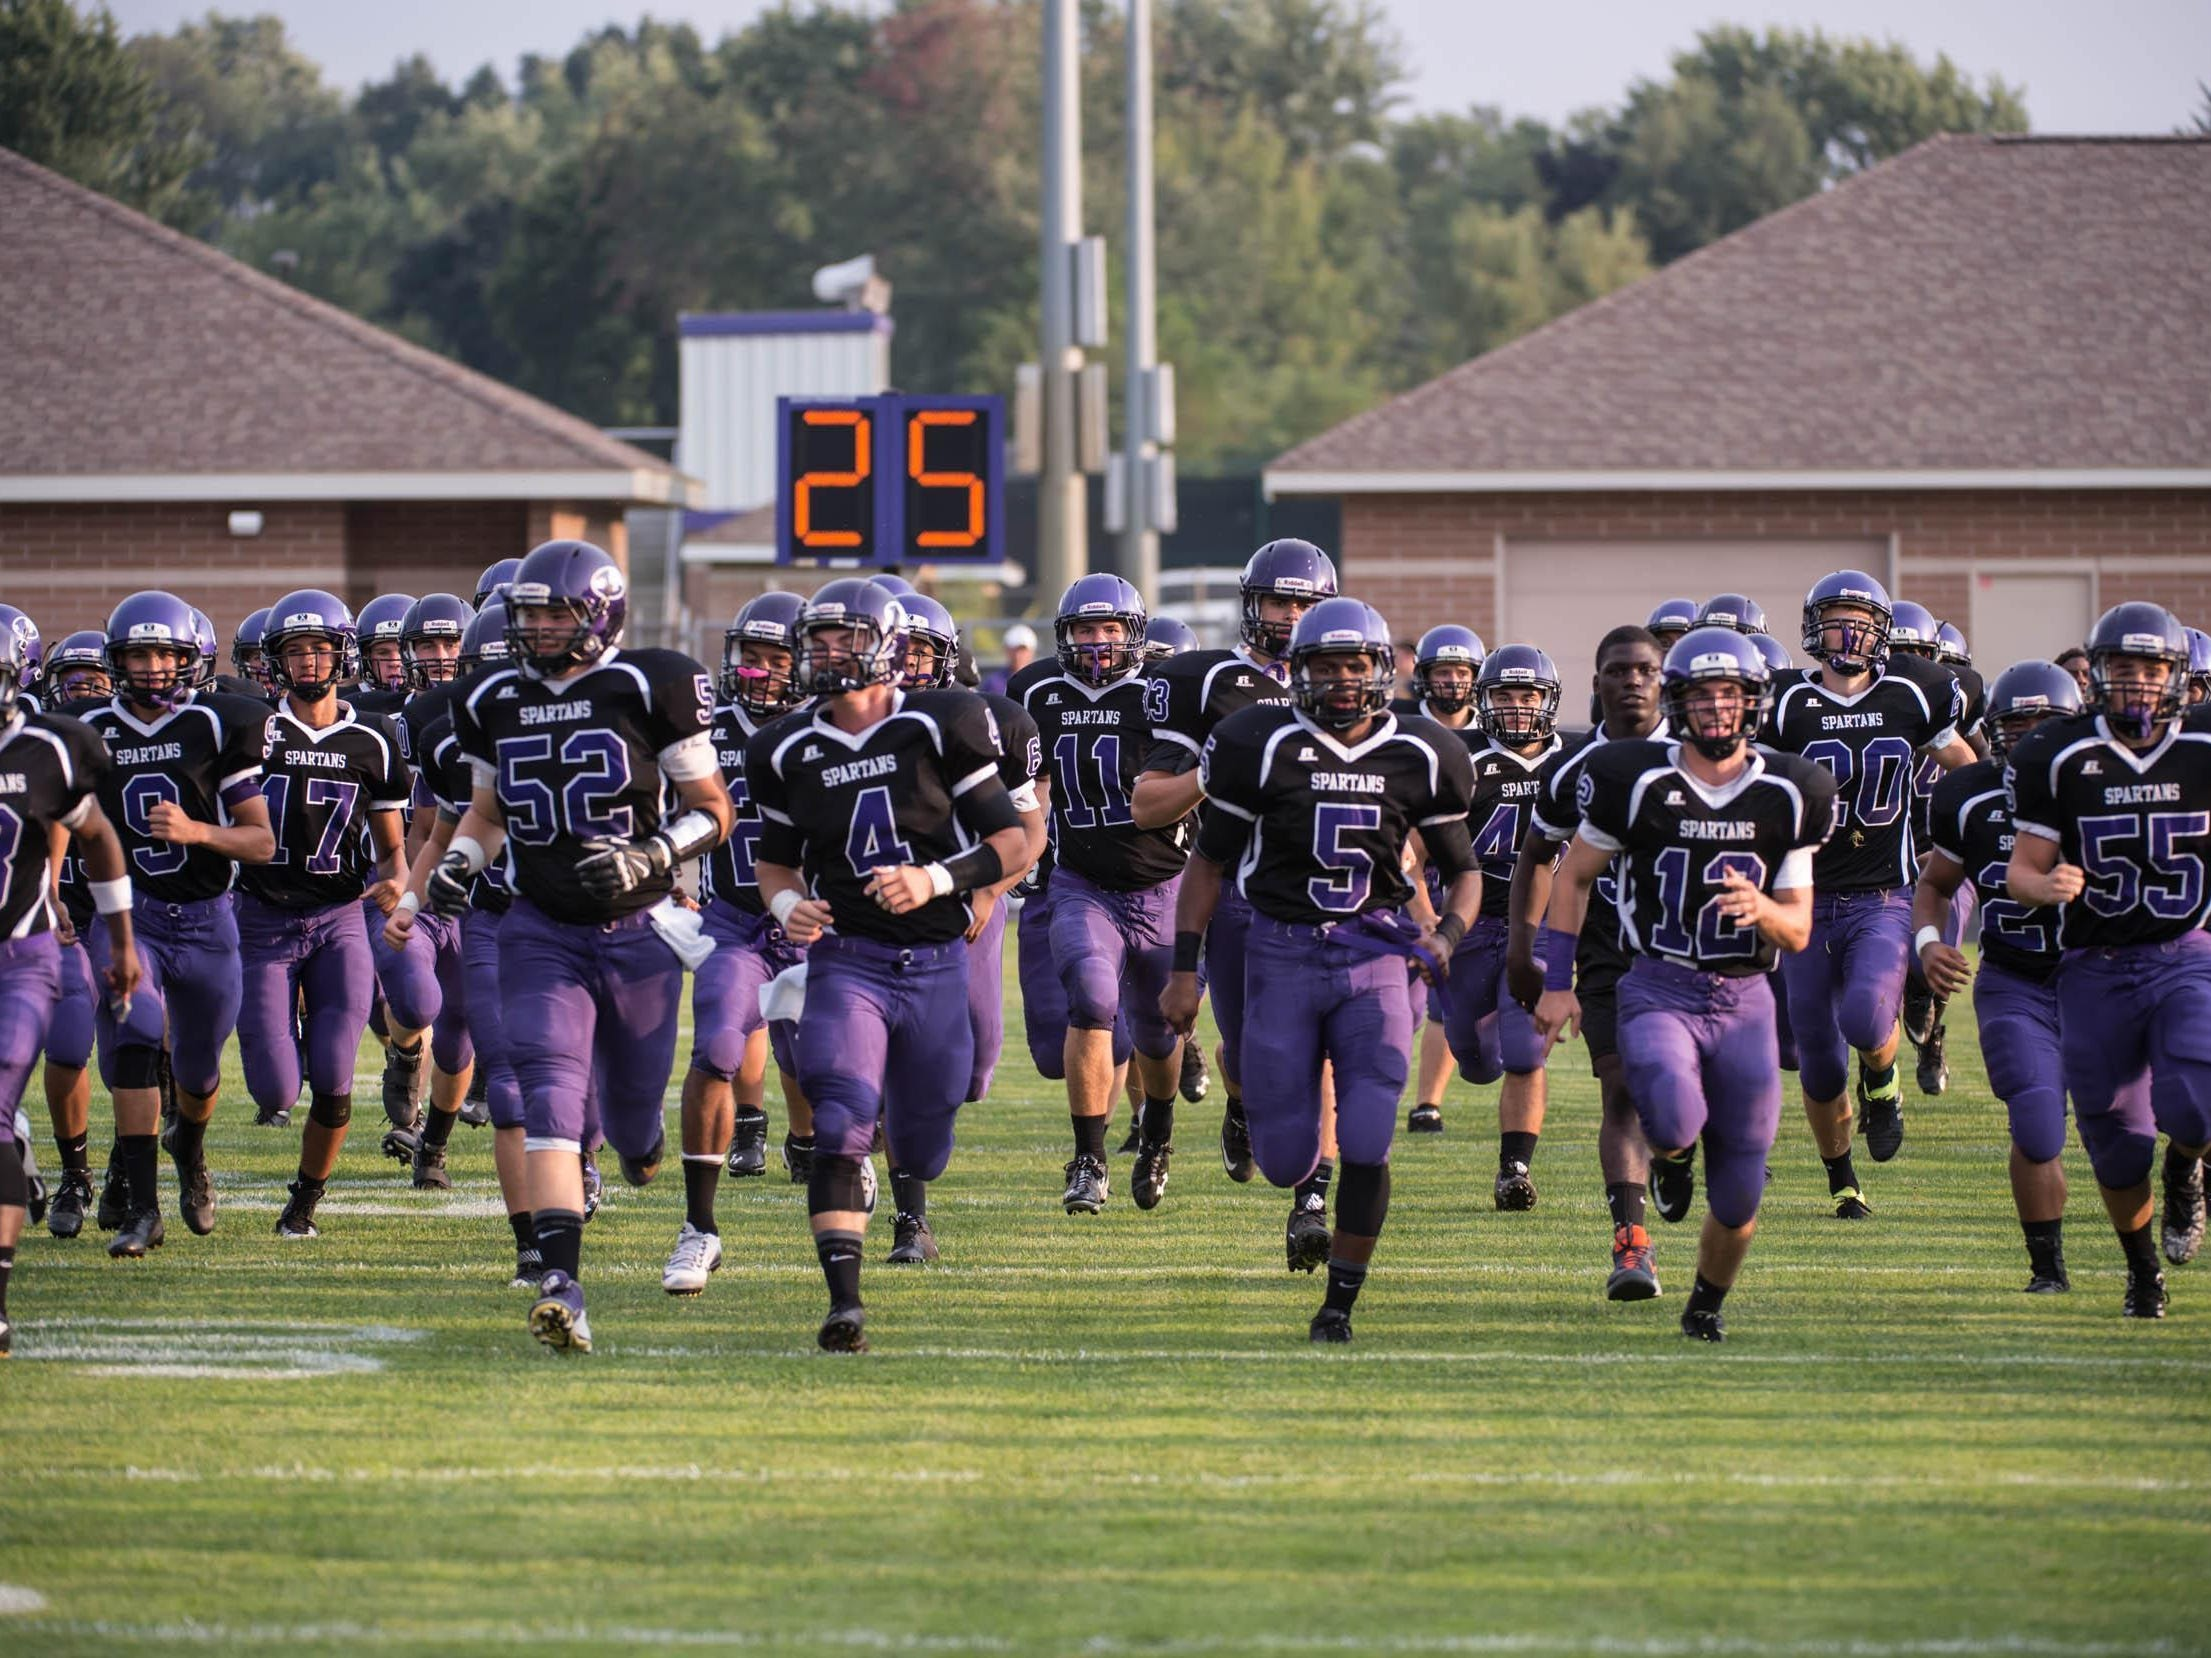 Lakeview starts the season at No. 1 in the Battle Creek Enquirer E-10 rankings.